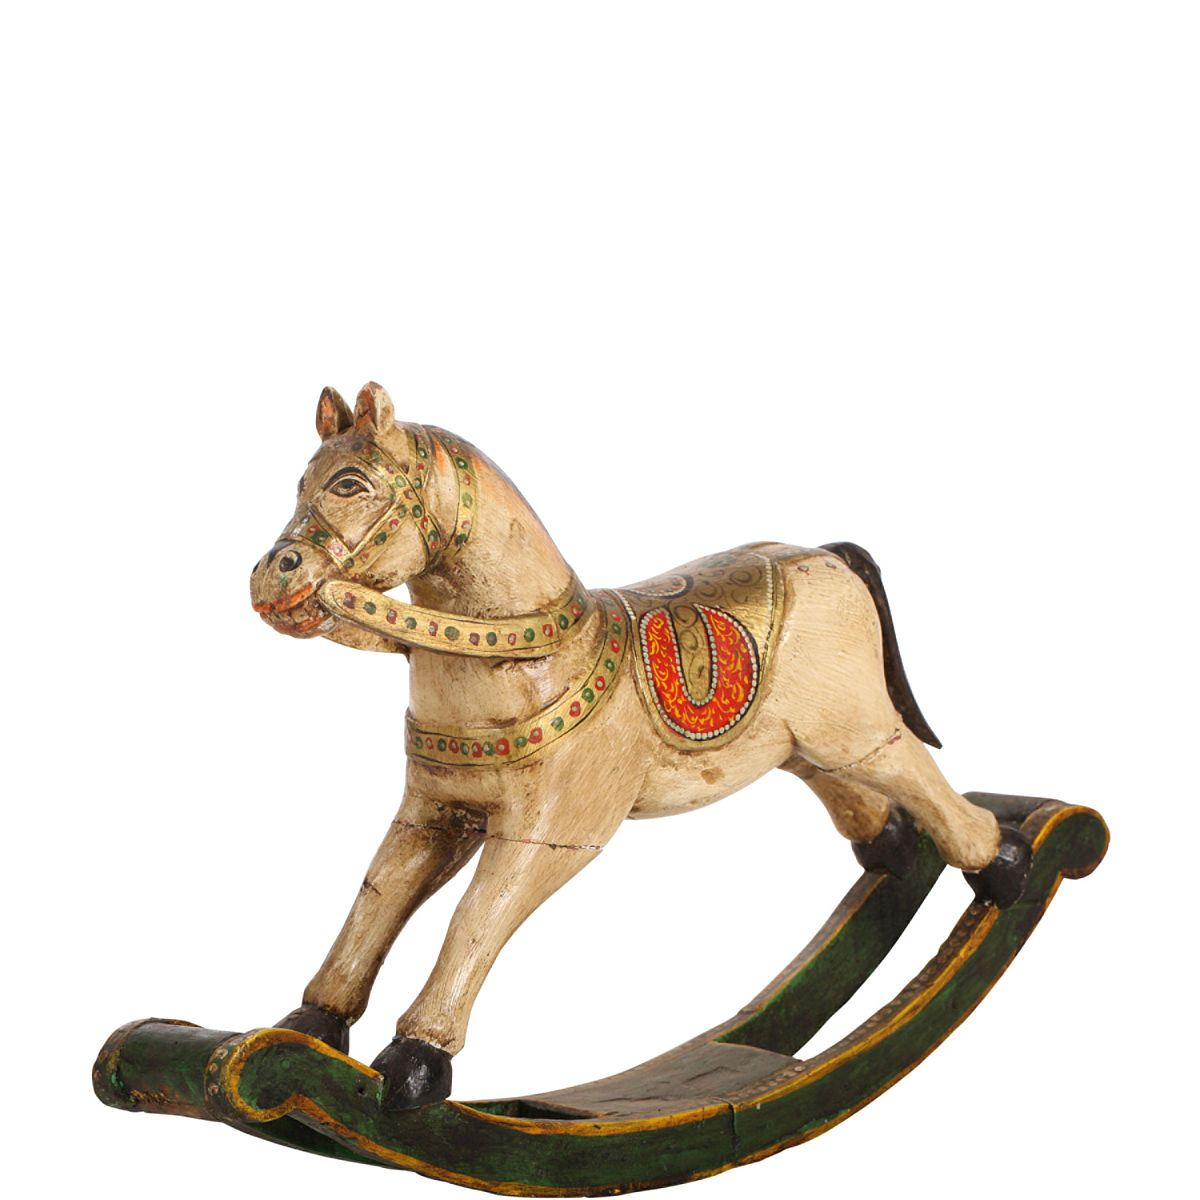 CHEVAL Decorative rocking horse 68 x 14 x 45 - Butlers England